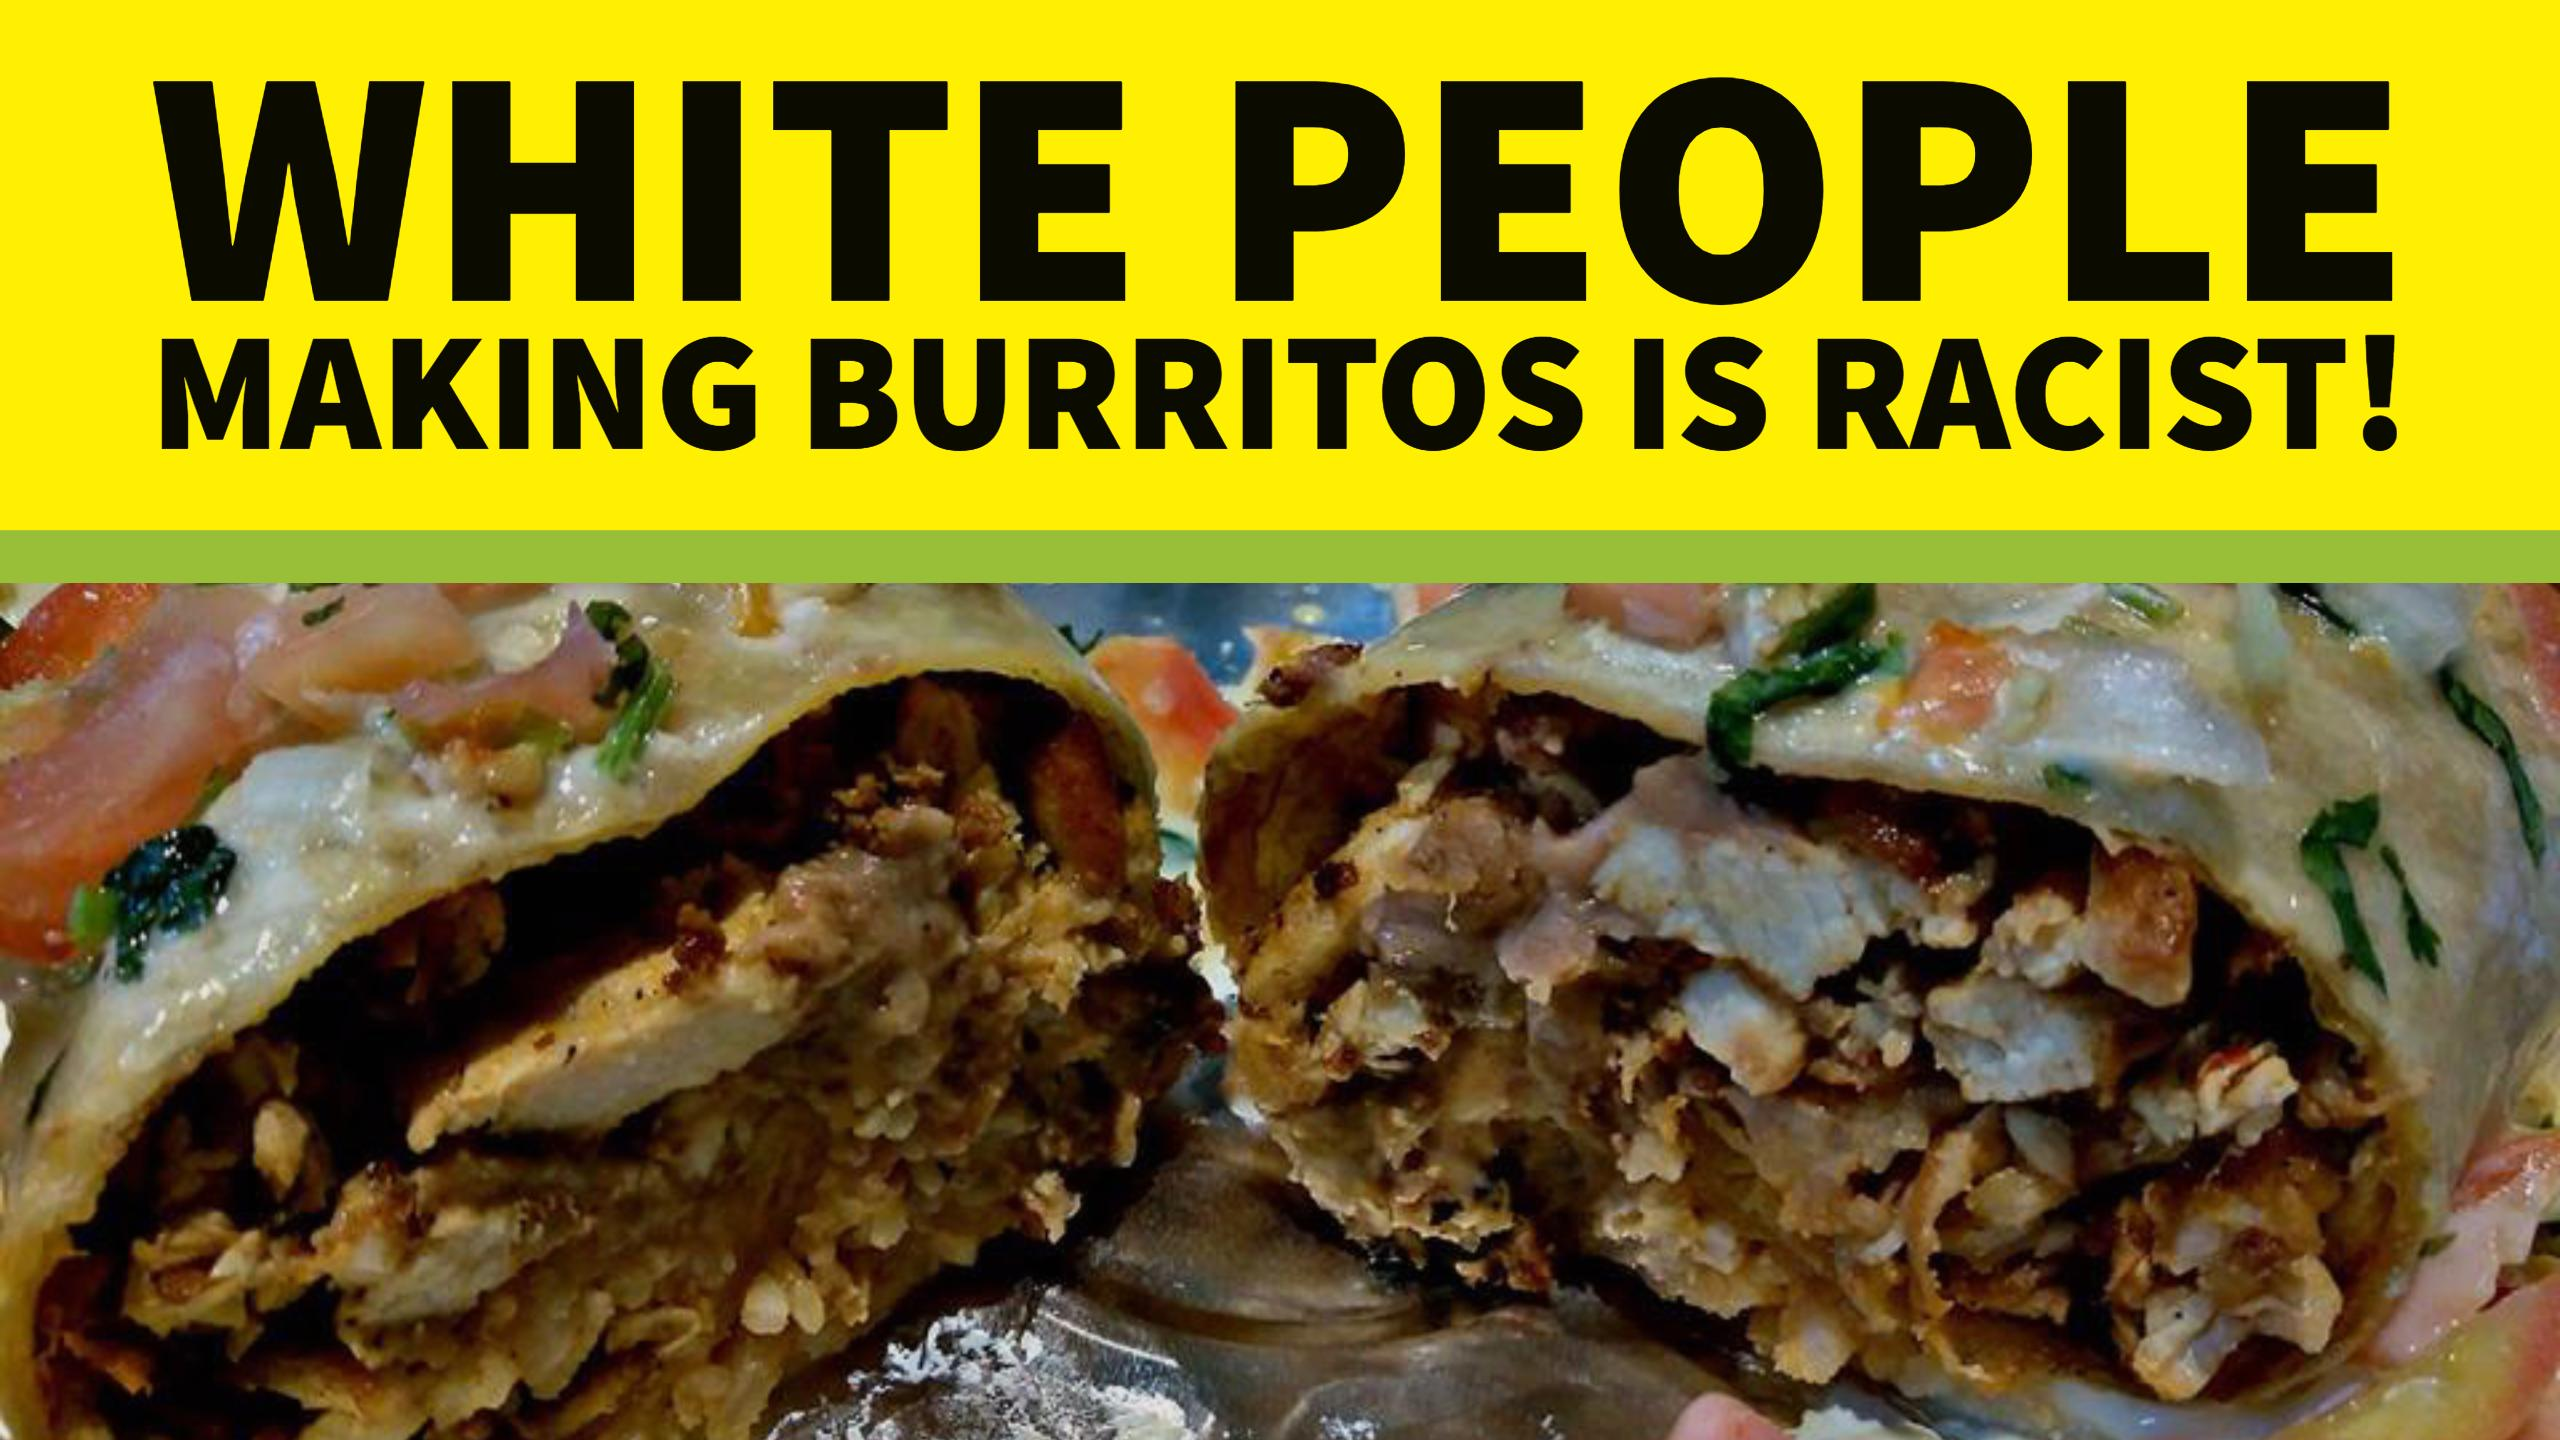 It's Racist For White People To Make Burritos, Or Something – Podcast